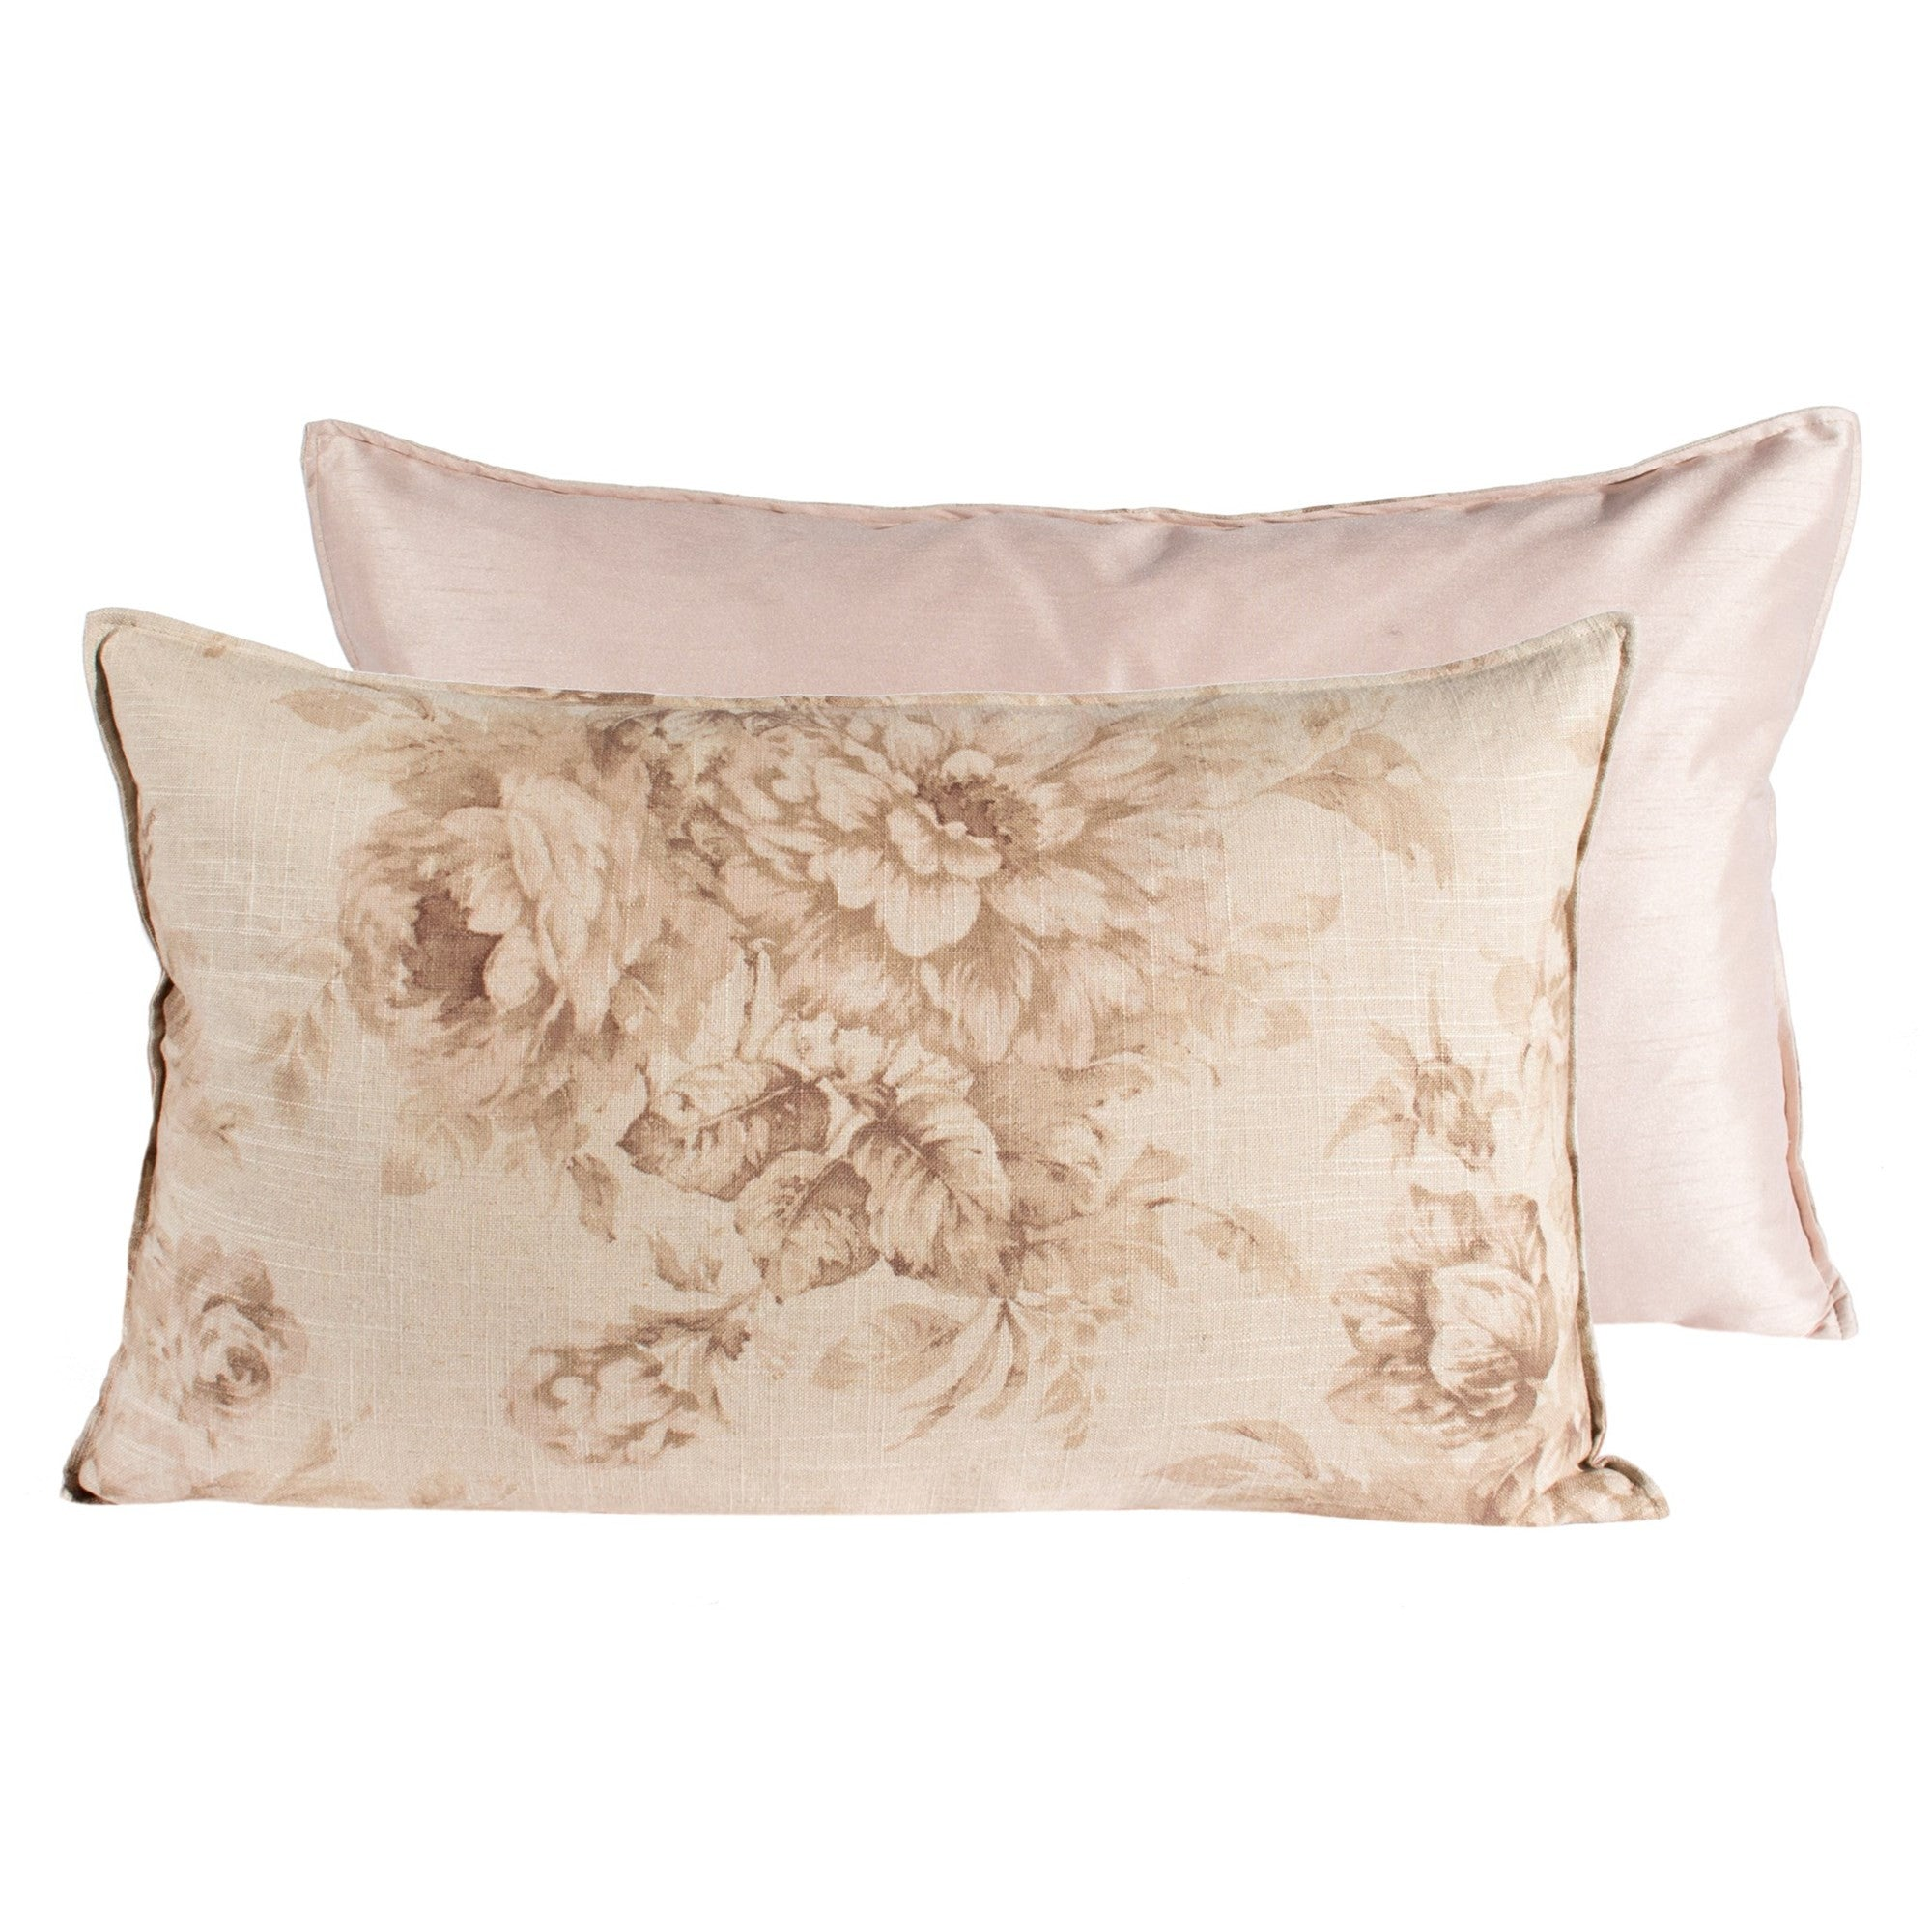 Tea Stain Old Rose Print Pillow - Rectangular -  Accessories - Canfloyd - Putti Fine Furnishings Toronto Canada